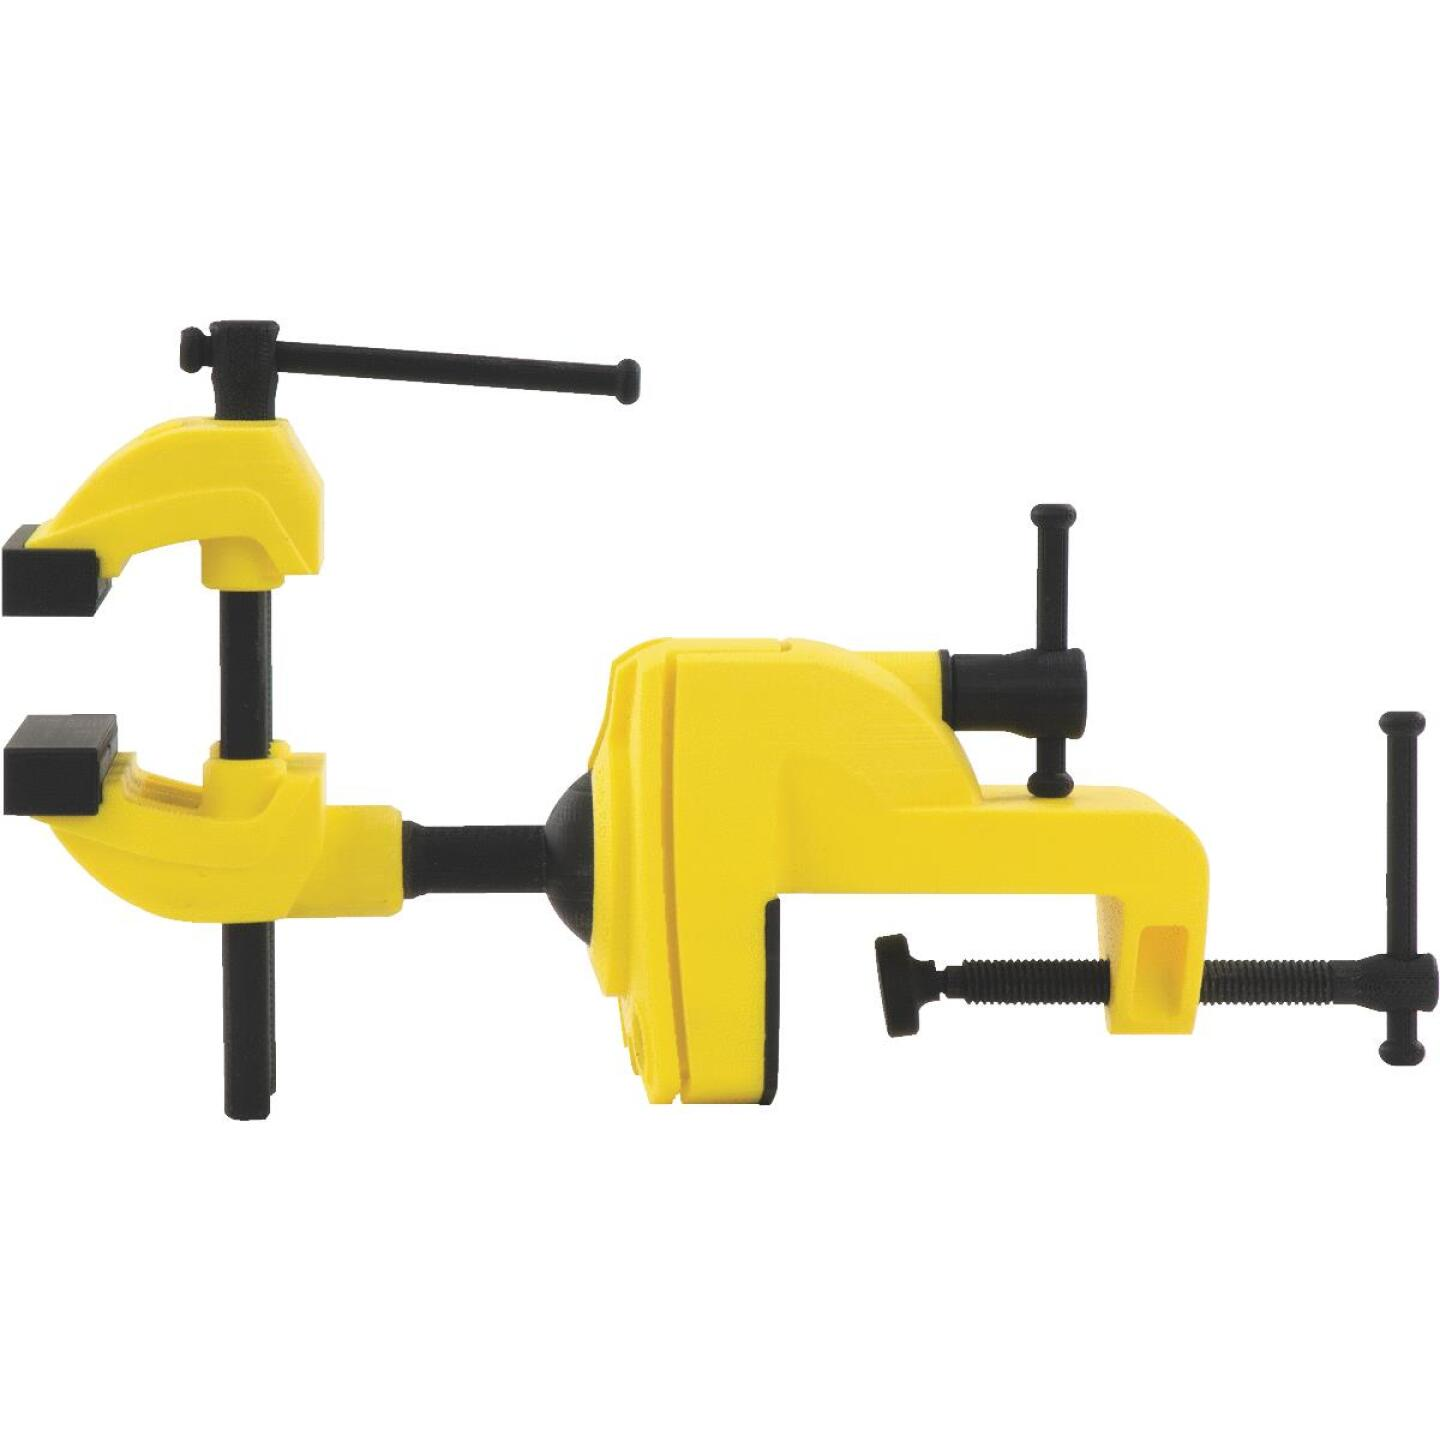 Stanley MaxSteel 2-1/2 In. Multi-Angle Clamp-On Vise Image 2